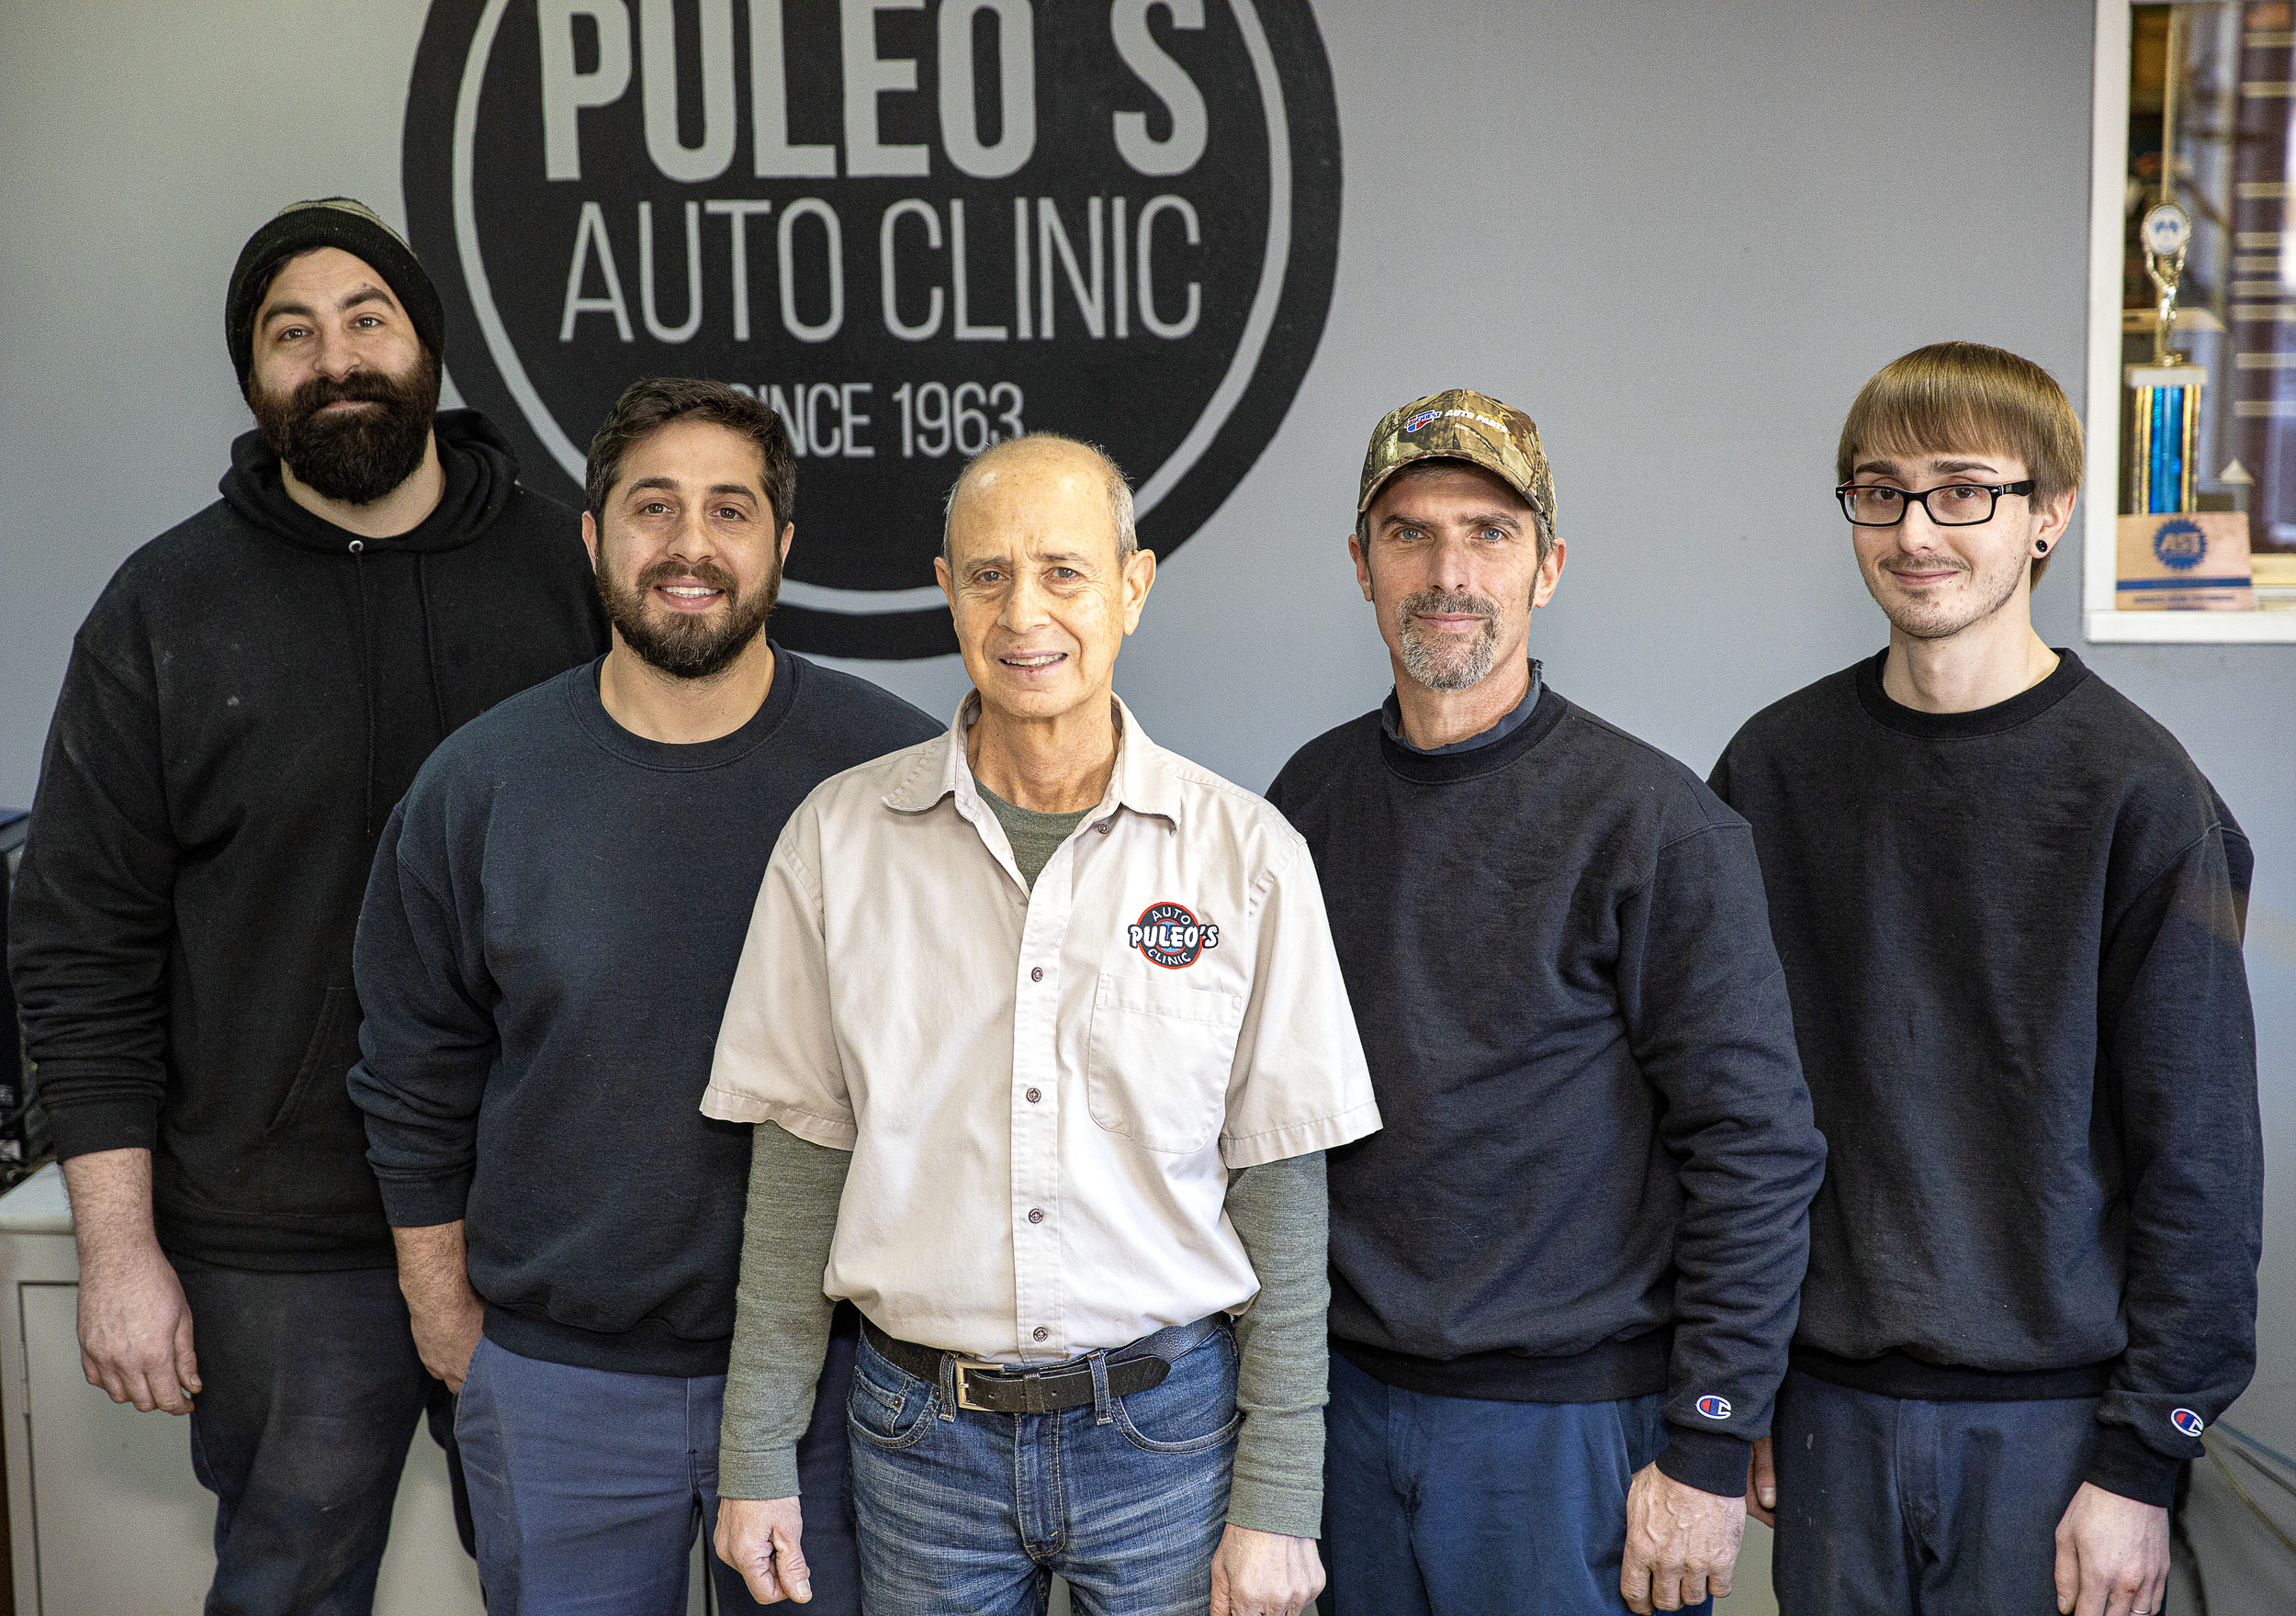 auto repair experts at puleo's auto clinic washington nj